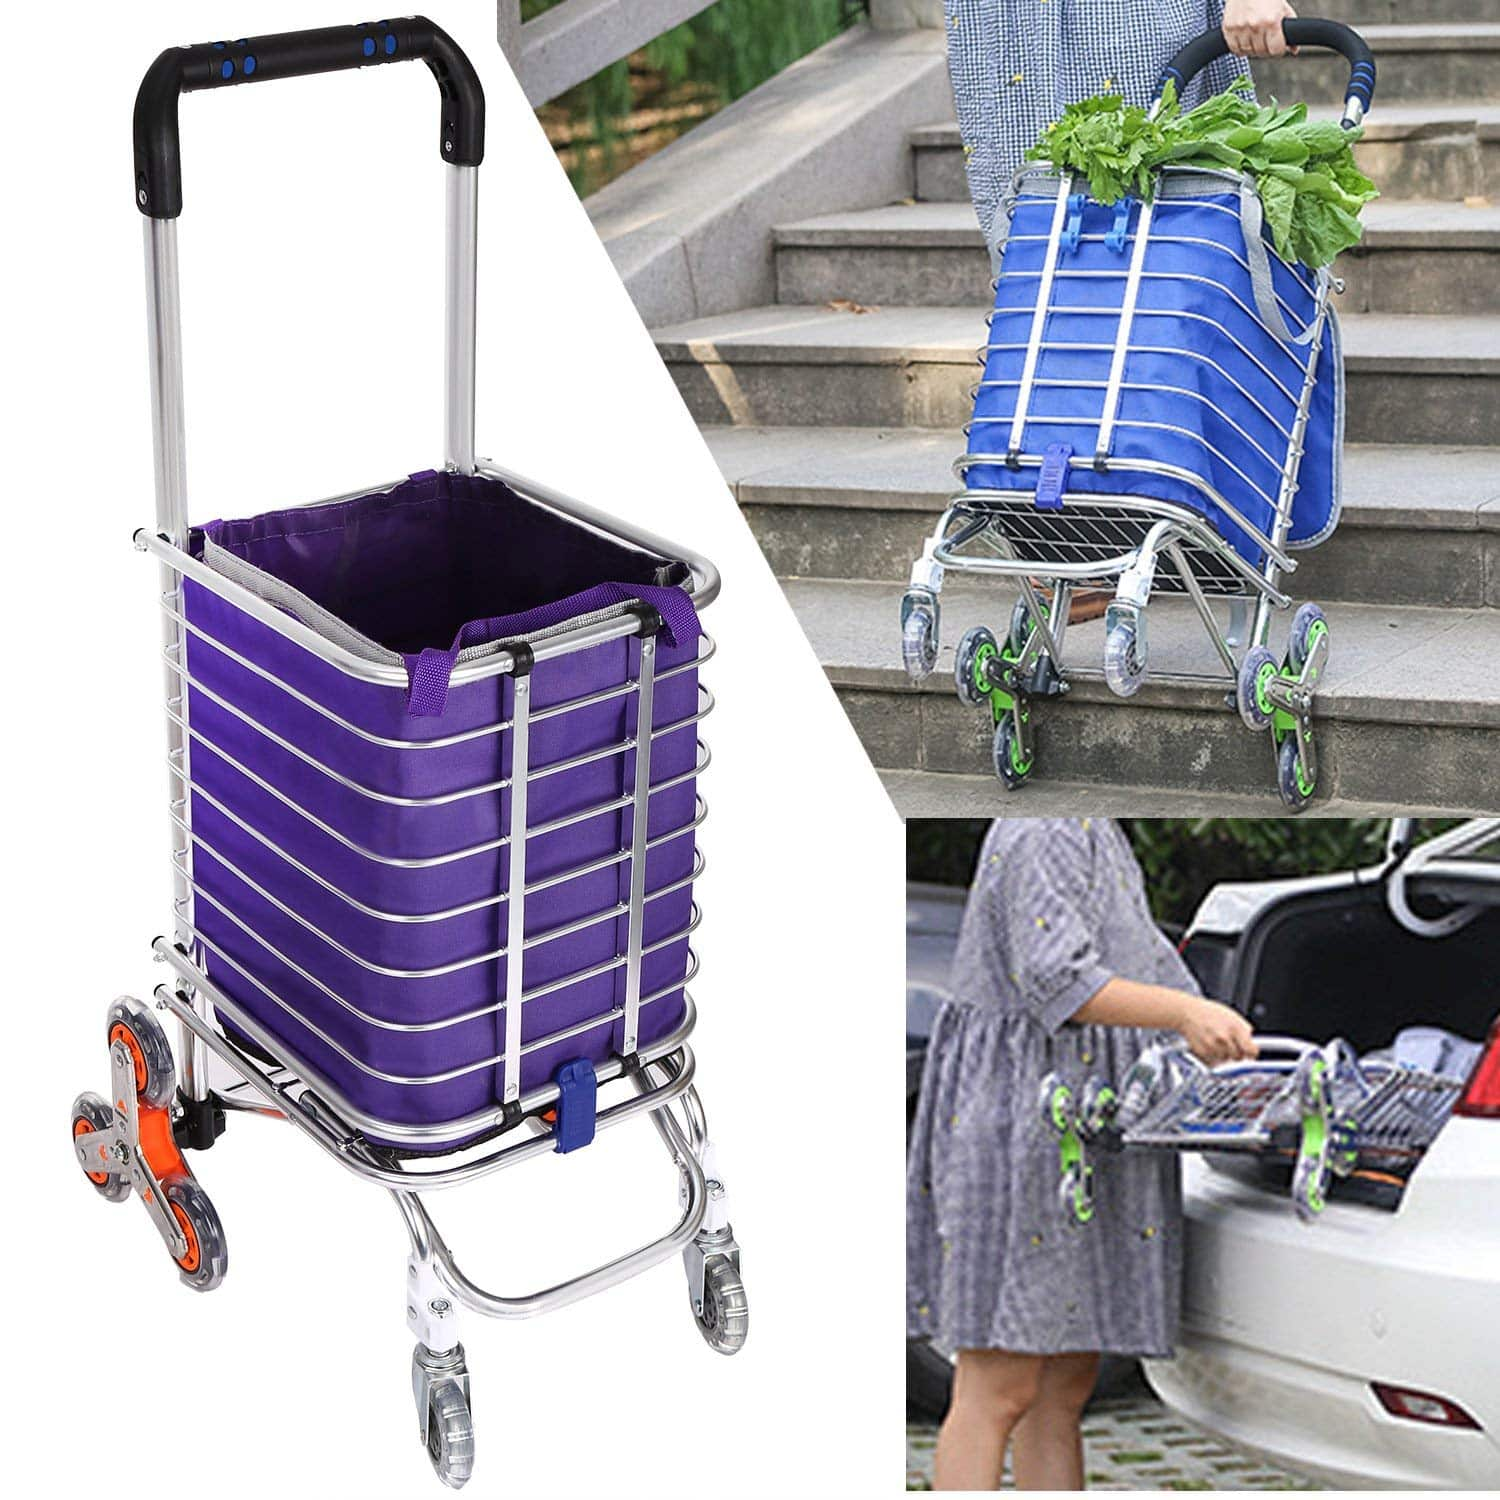 Top 10 Best Stair Climbing Carts in 2020 Reviews & Buyer's Guide